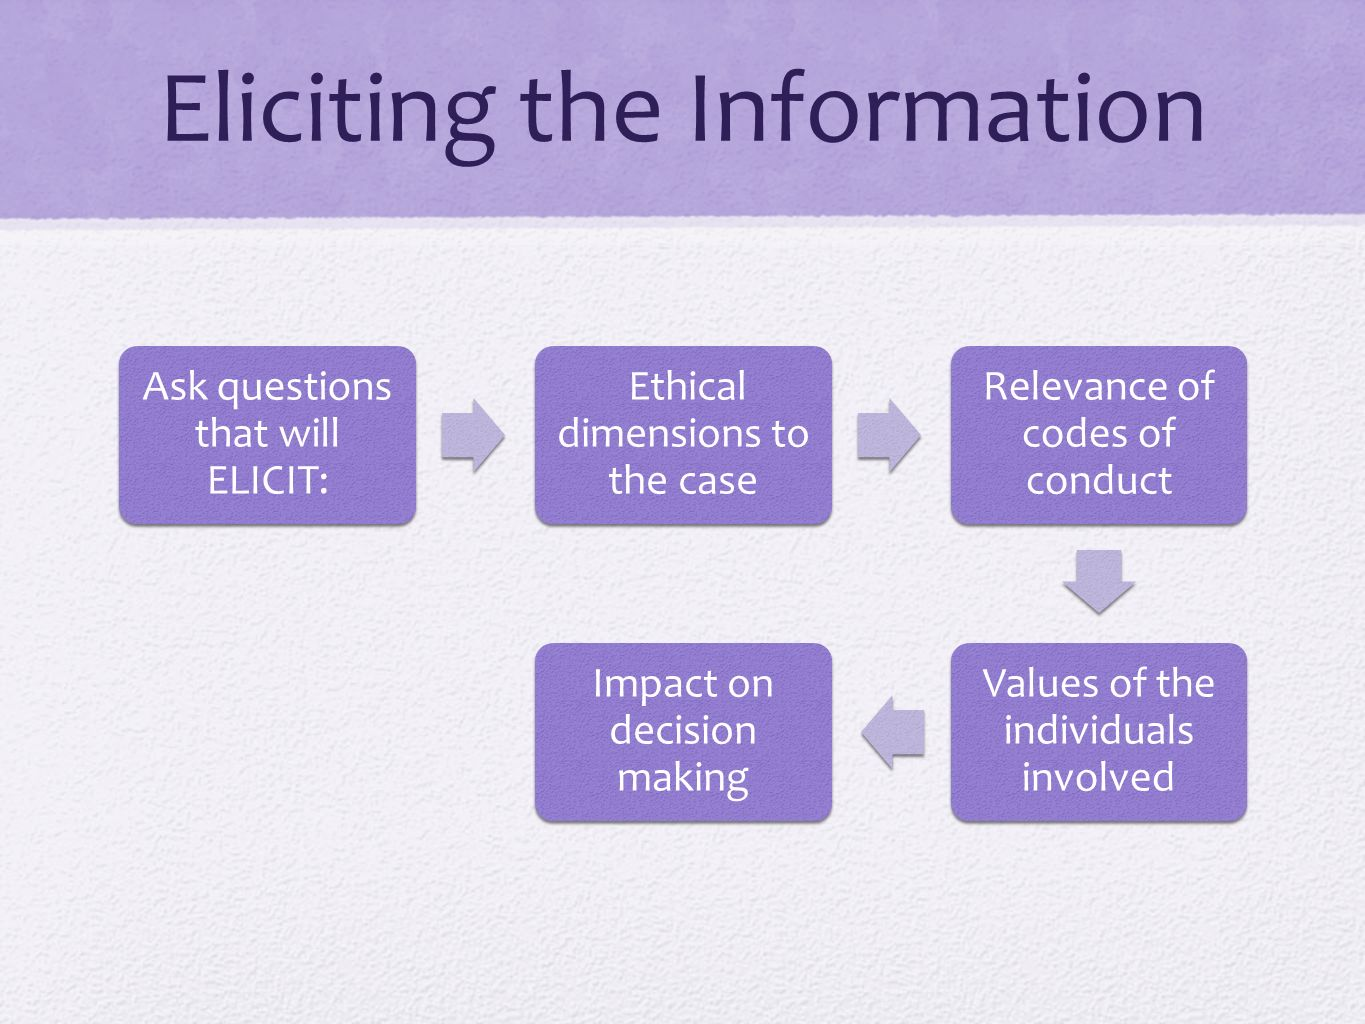 Eliciting the Information